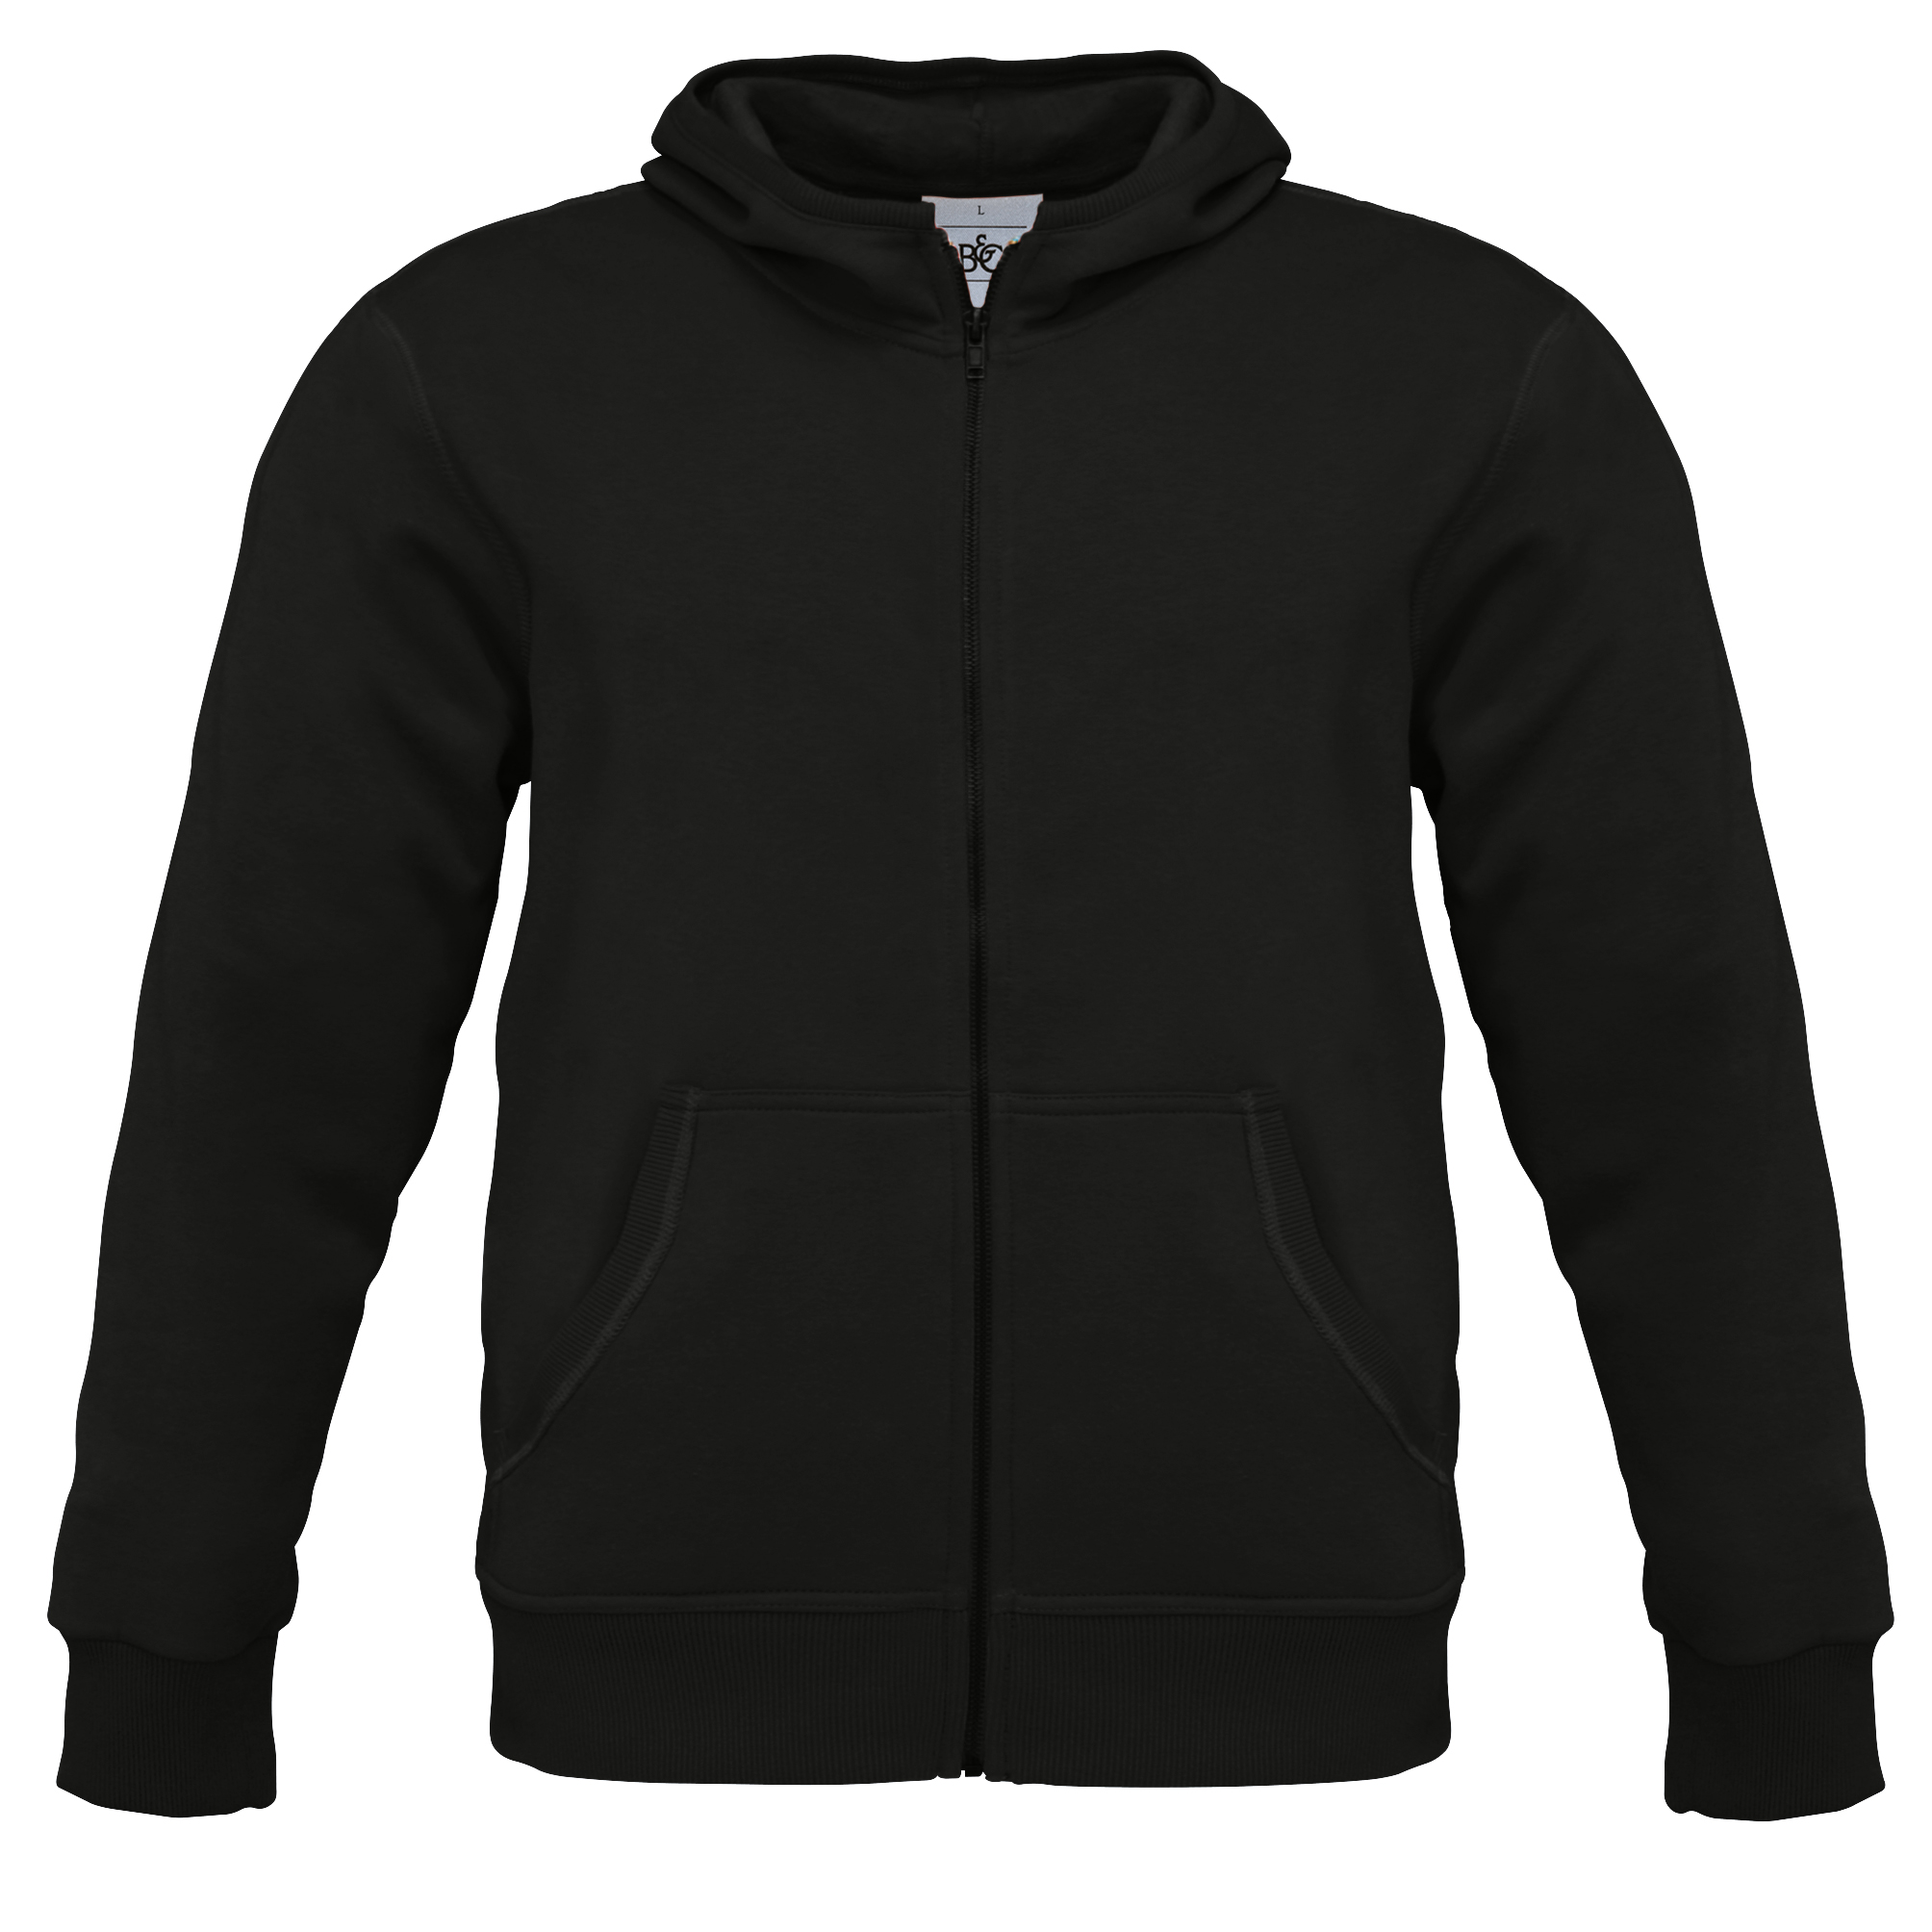 Find great deals on eBay for plain sweatshirts. Shop with confidence.